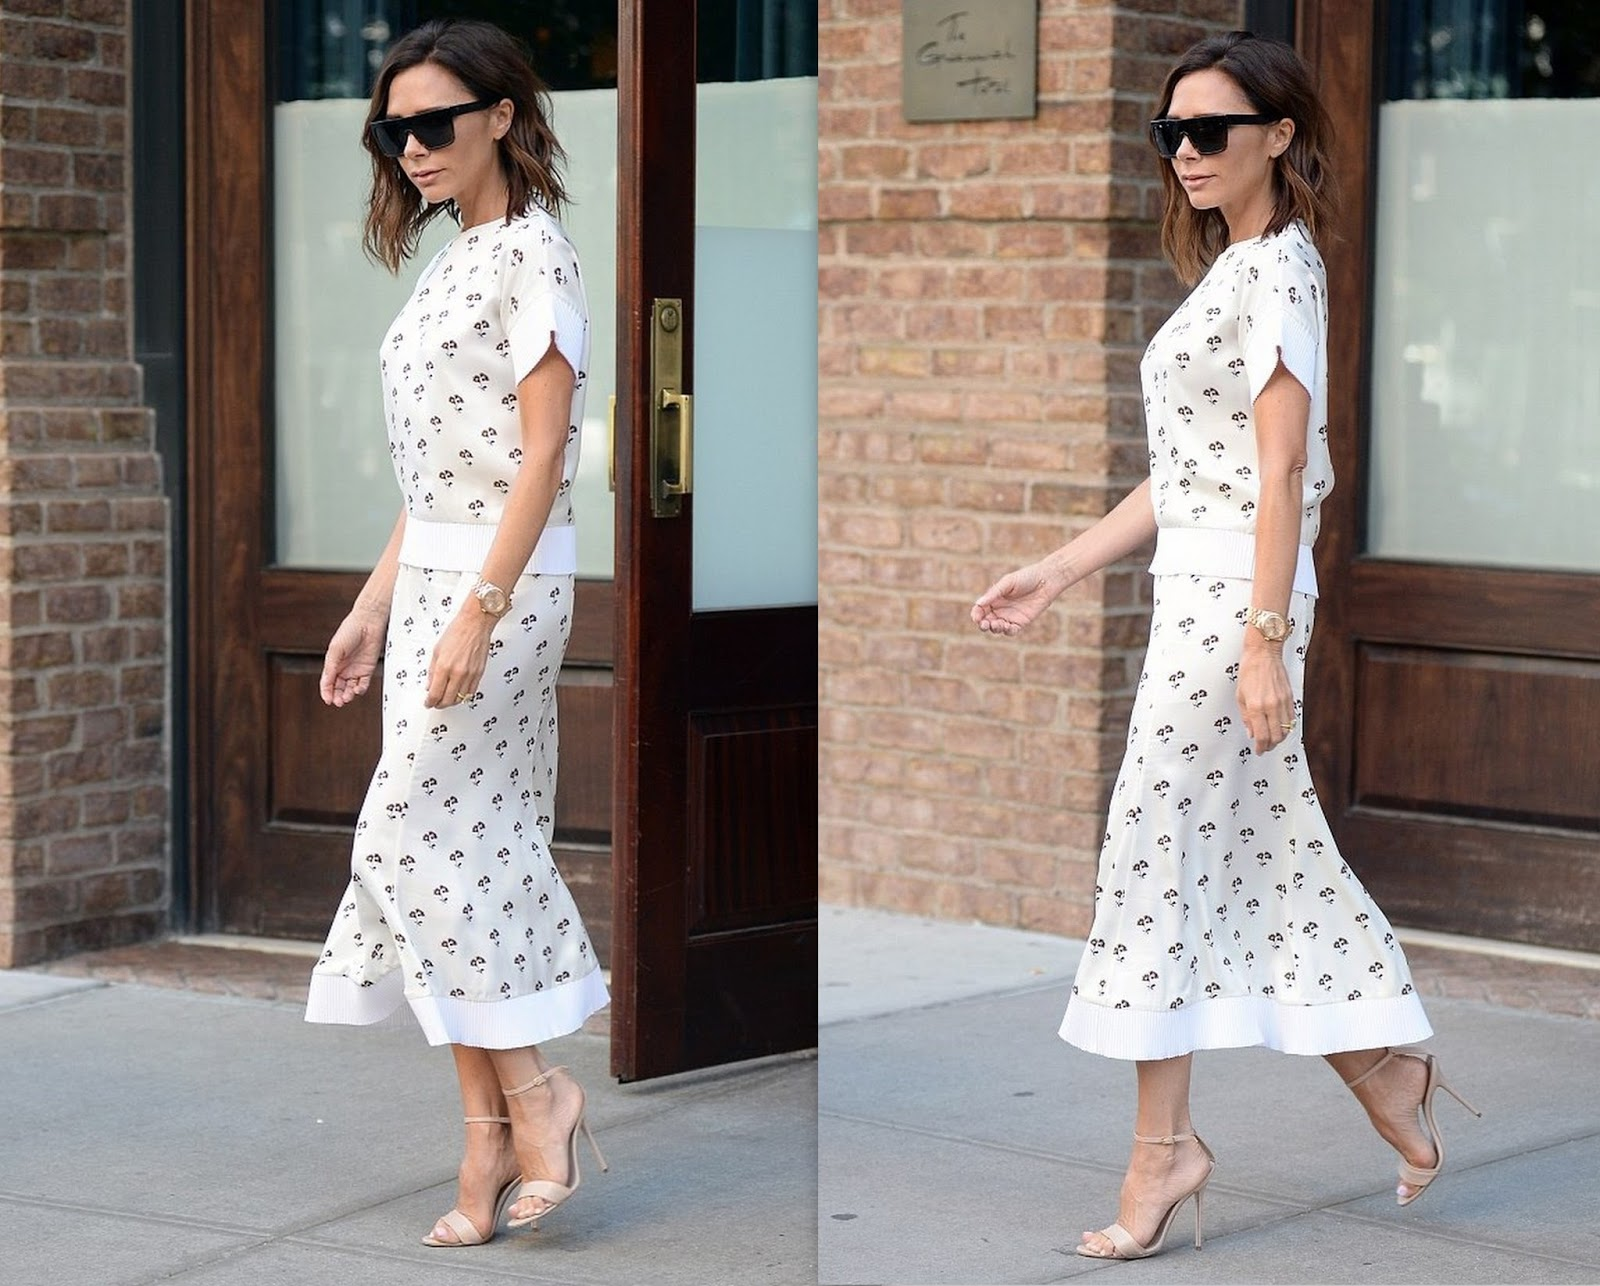 Victoria Beckham in NYC